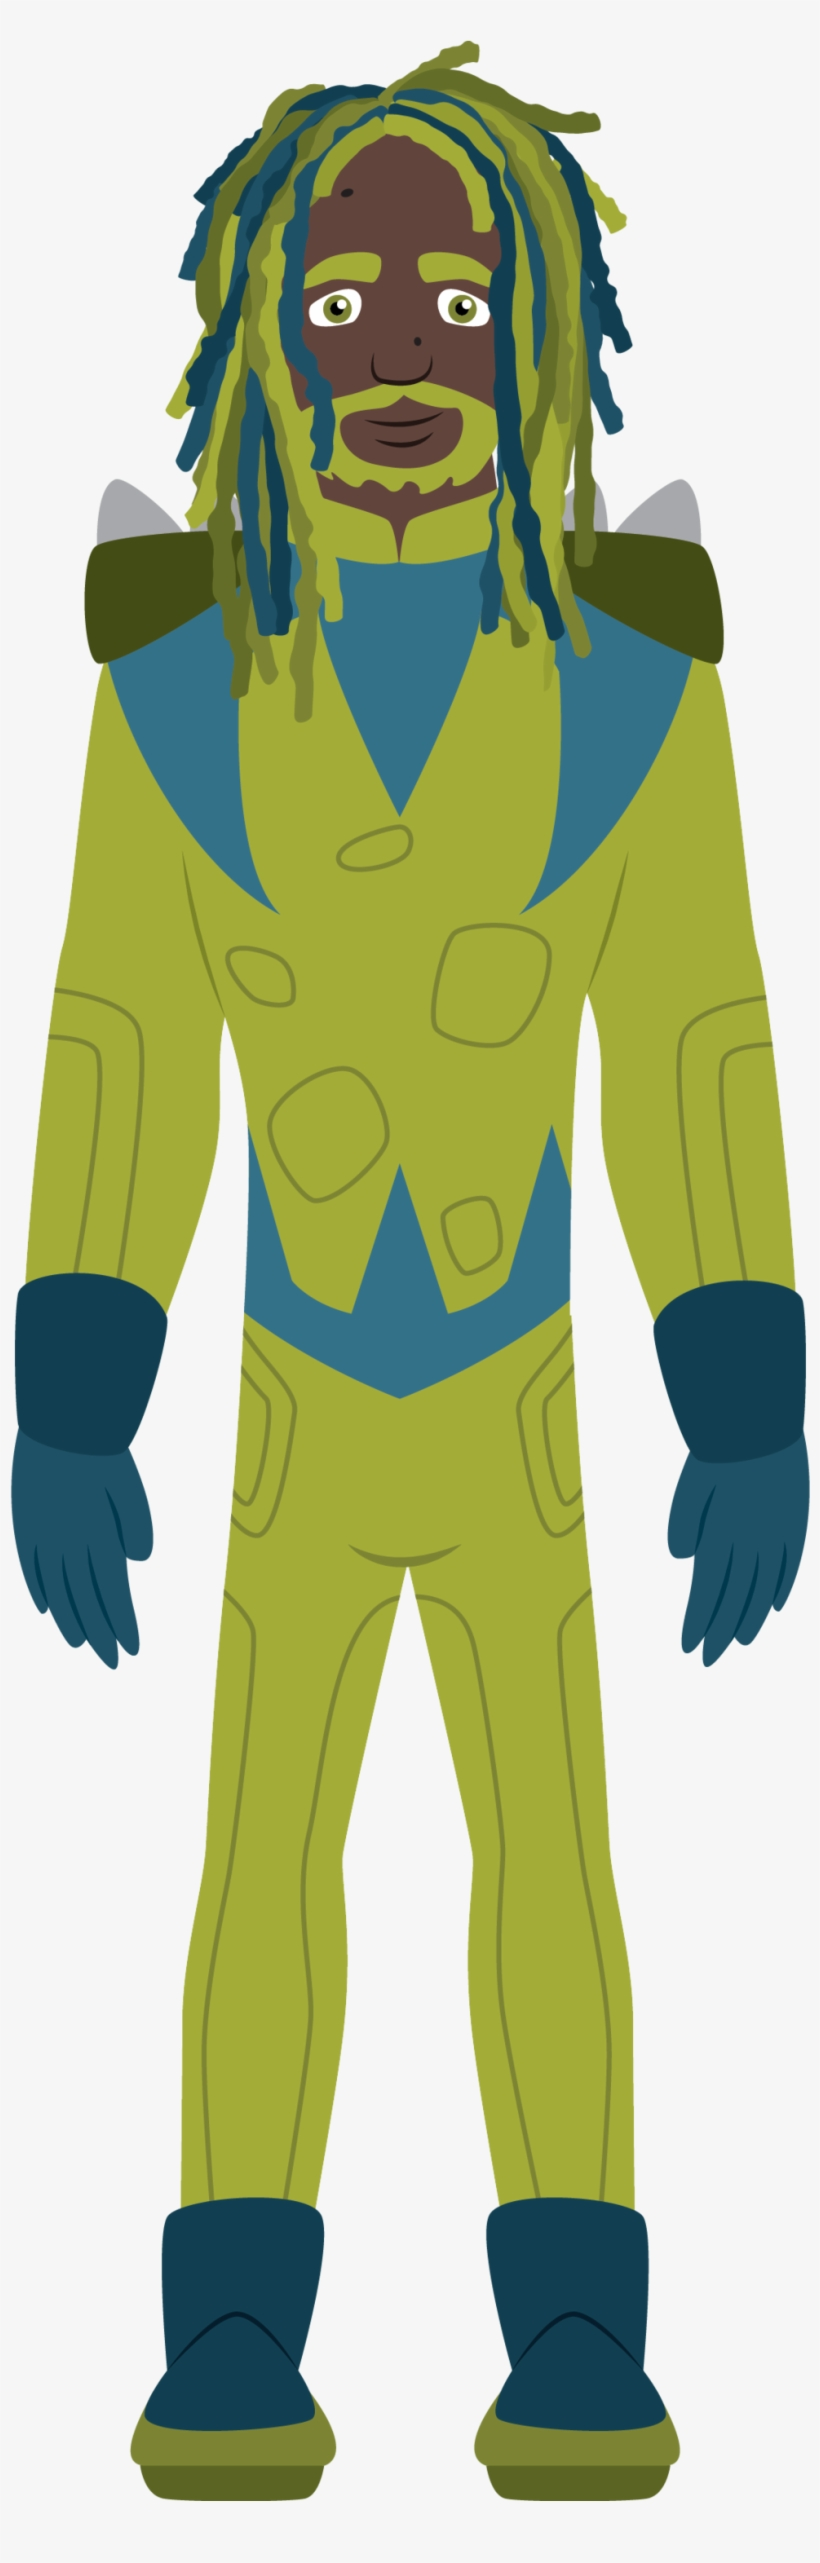 Chameleoncove 12 10 Human Zeg By Chameleoncove - Blaze And The Monster Machine Human, transparent png #9483382